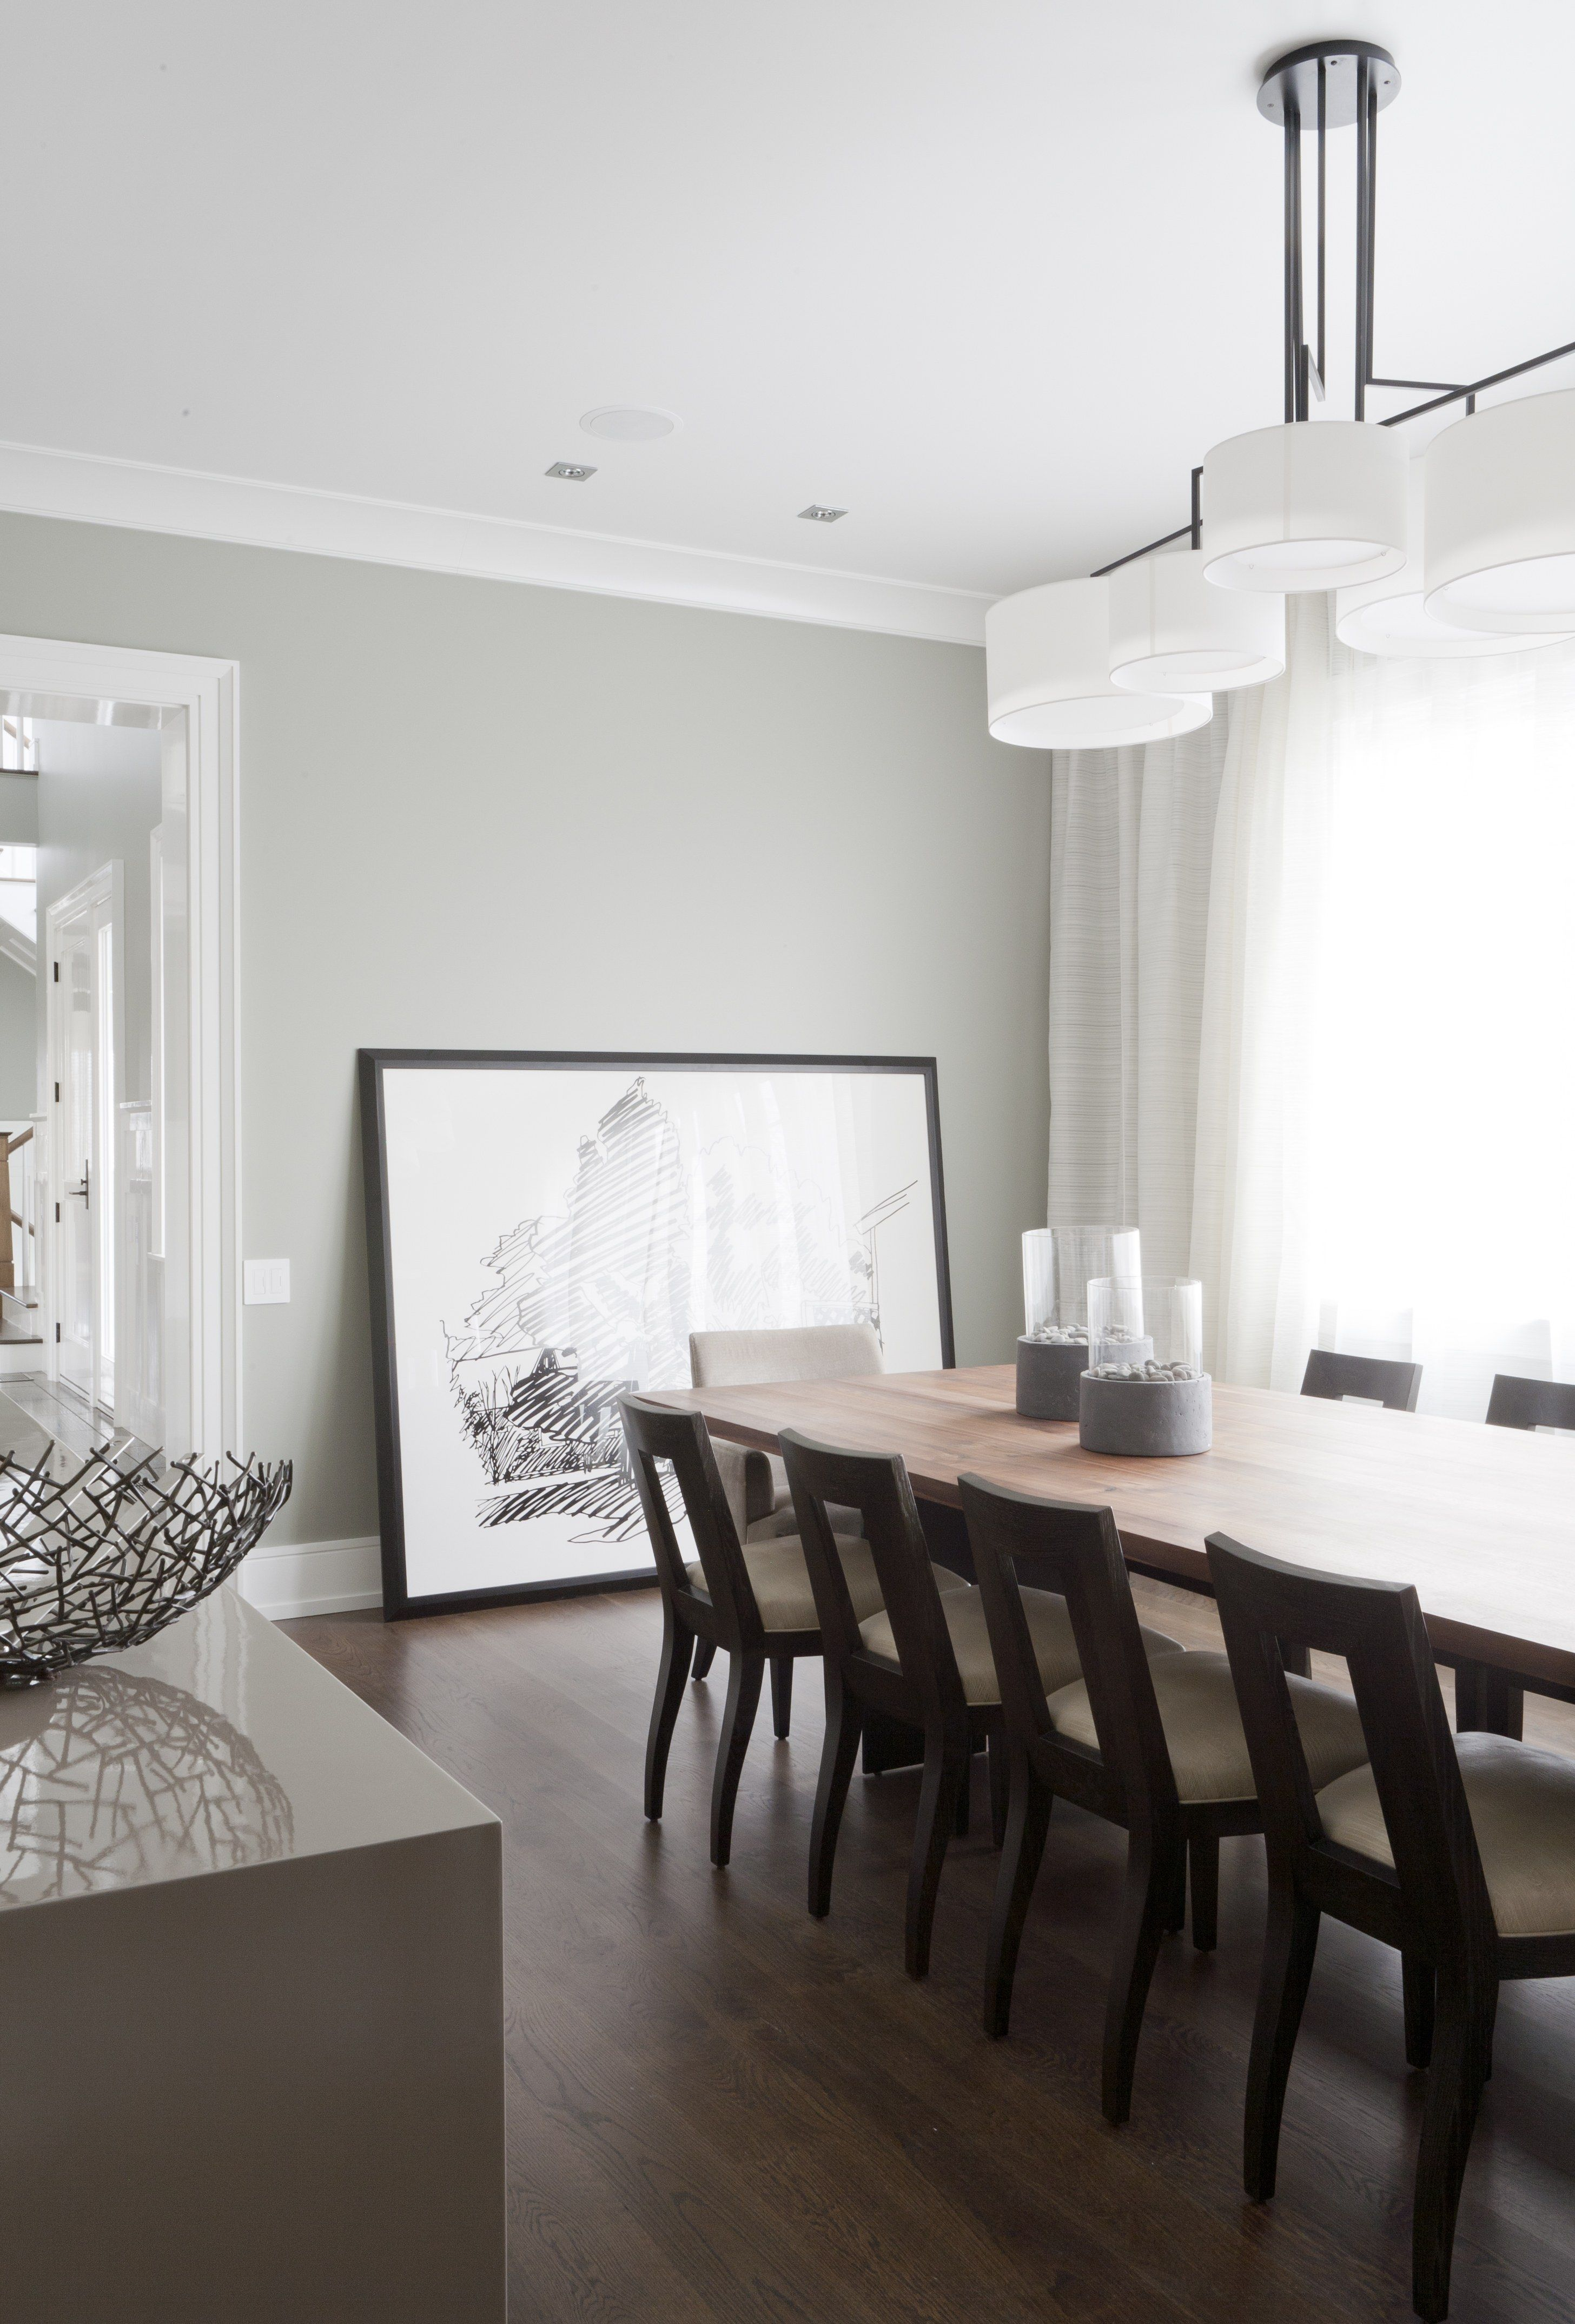 Dont use flat paint the walls are painted sherwin williams repose gray with a low luster eggshell finish it has a little sheen to it which gives the